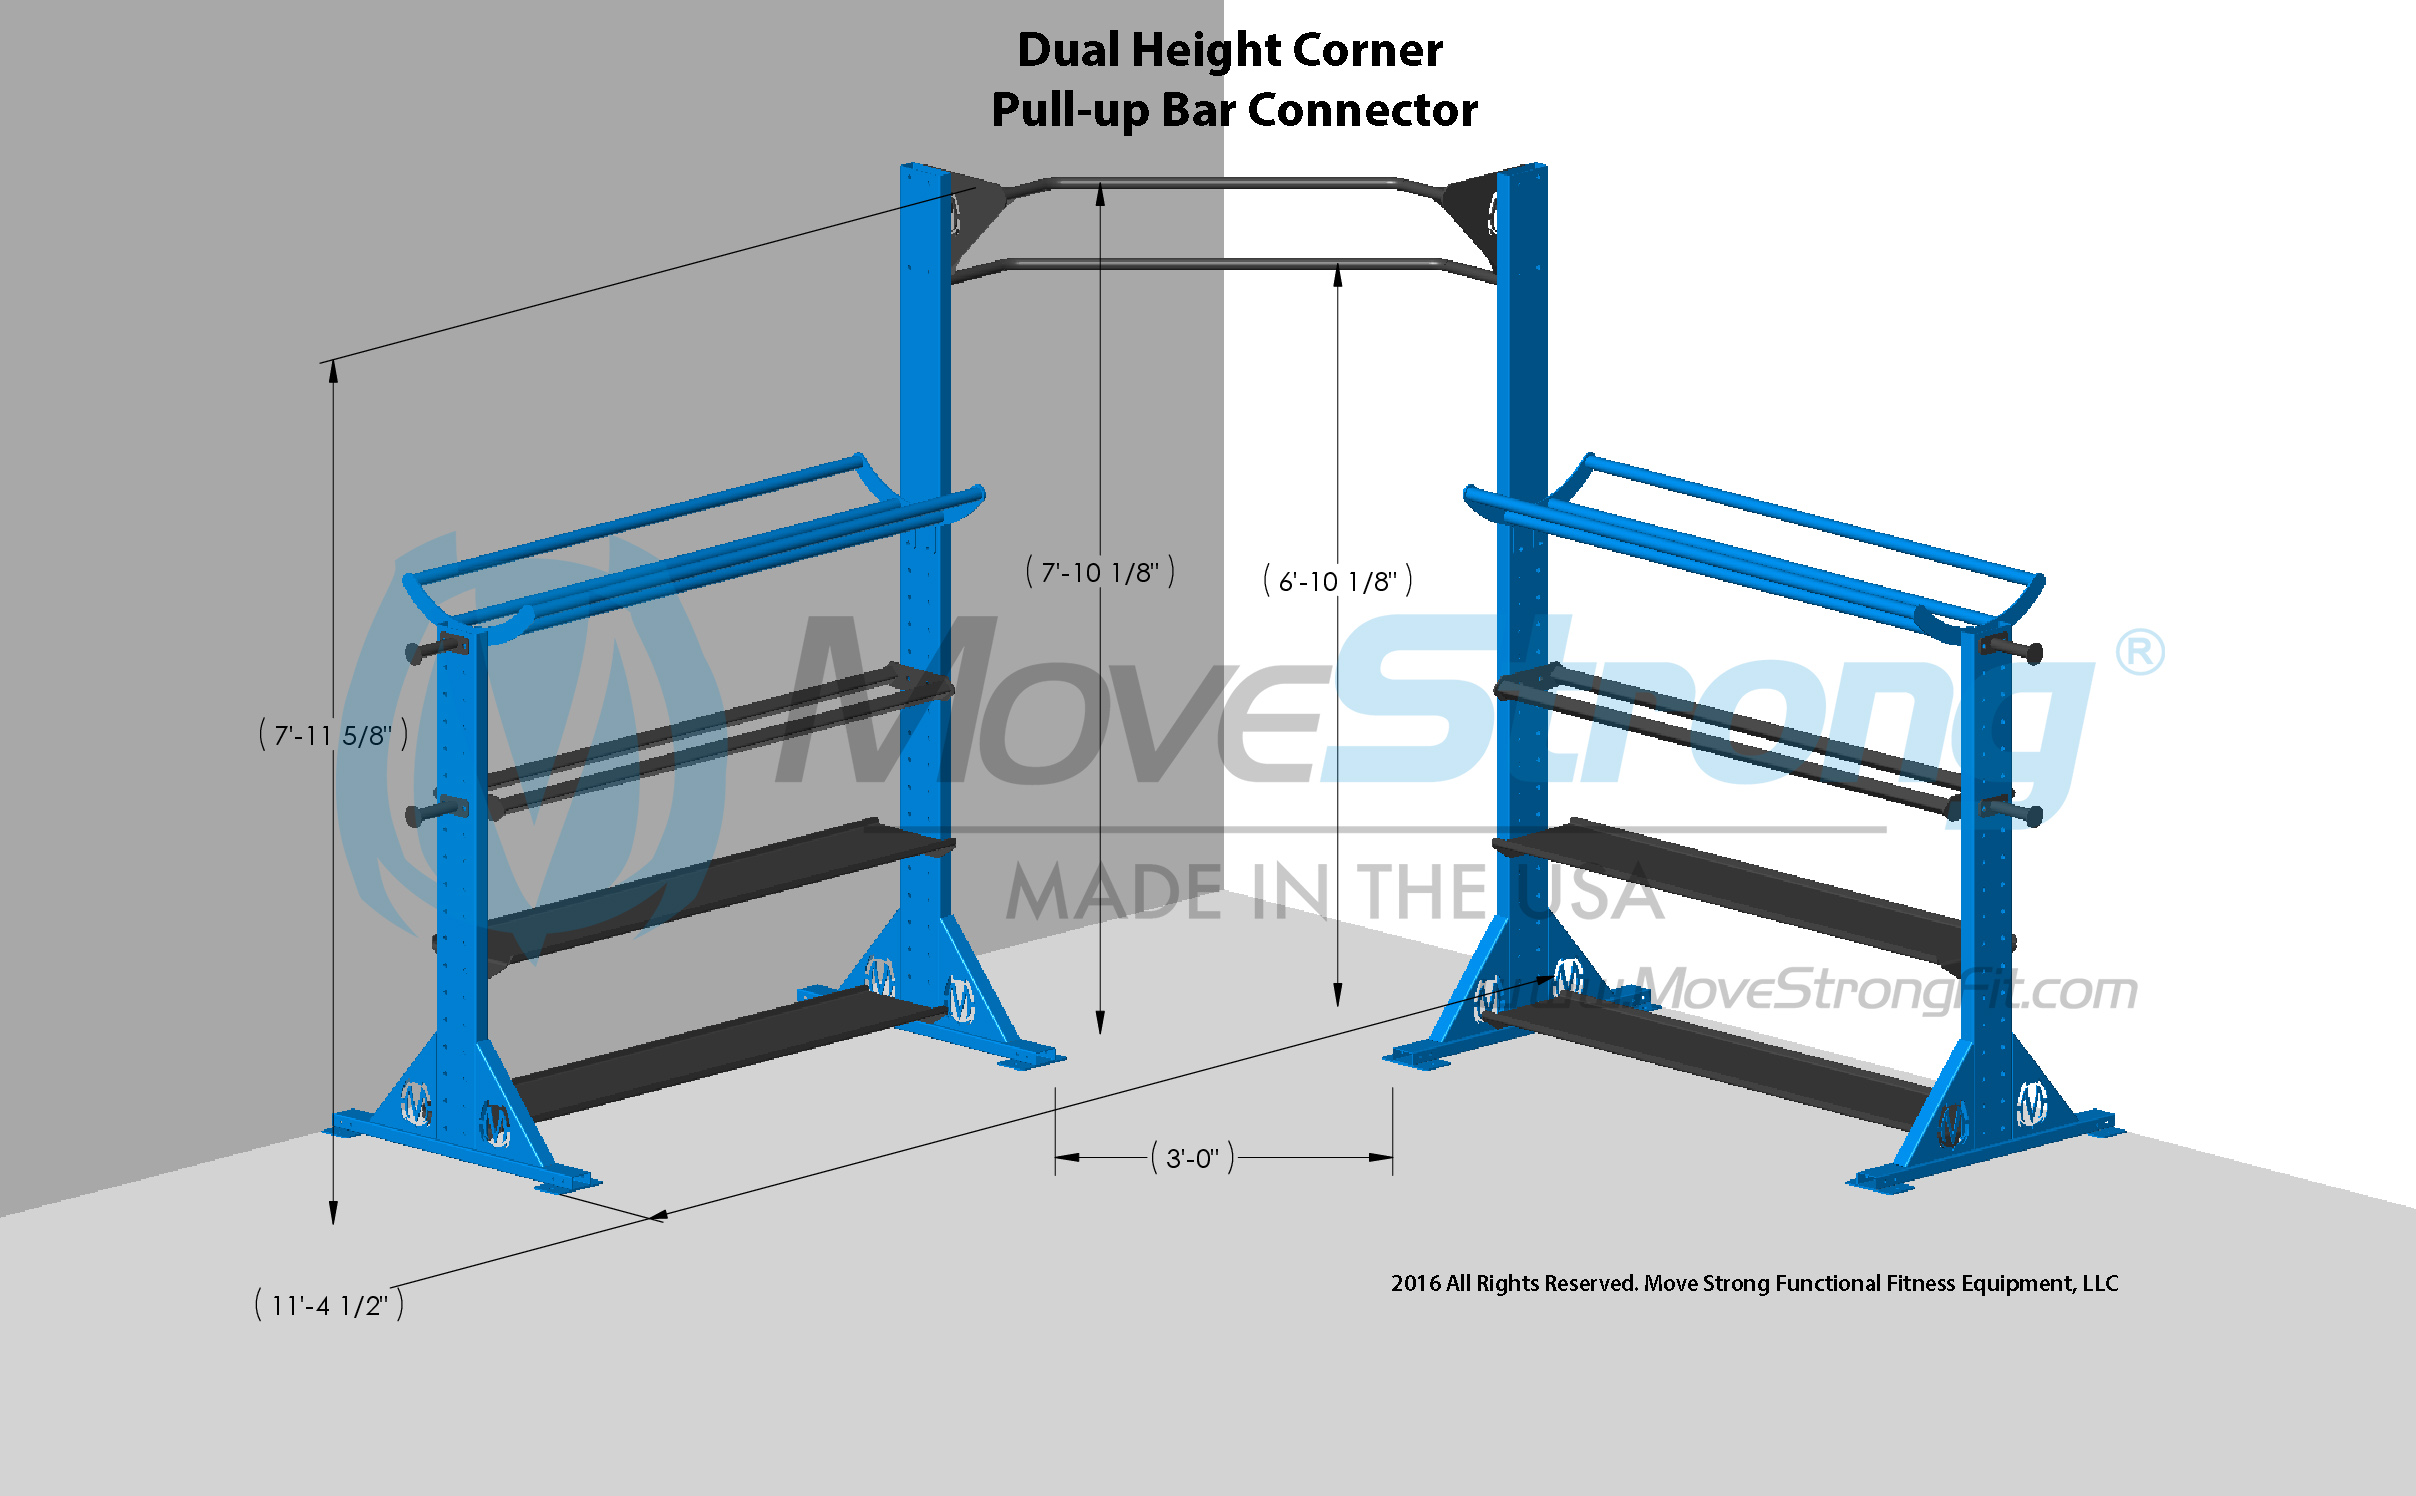 CORNER WALL PLACEMENT OPTION